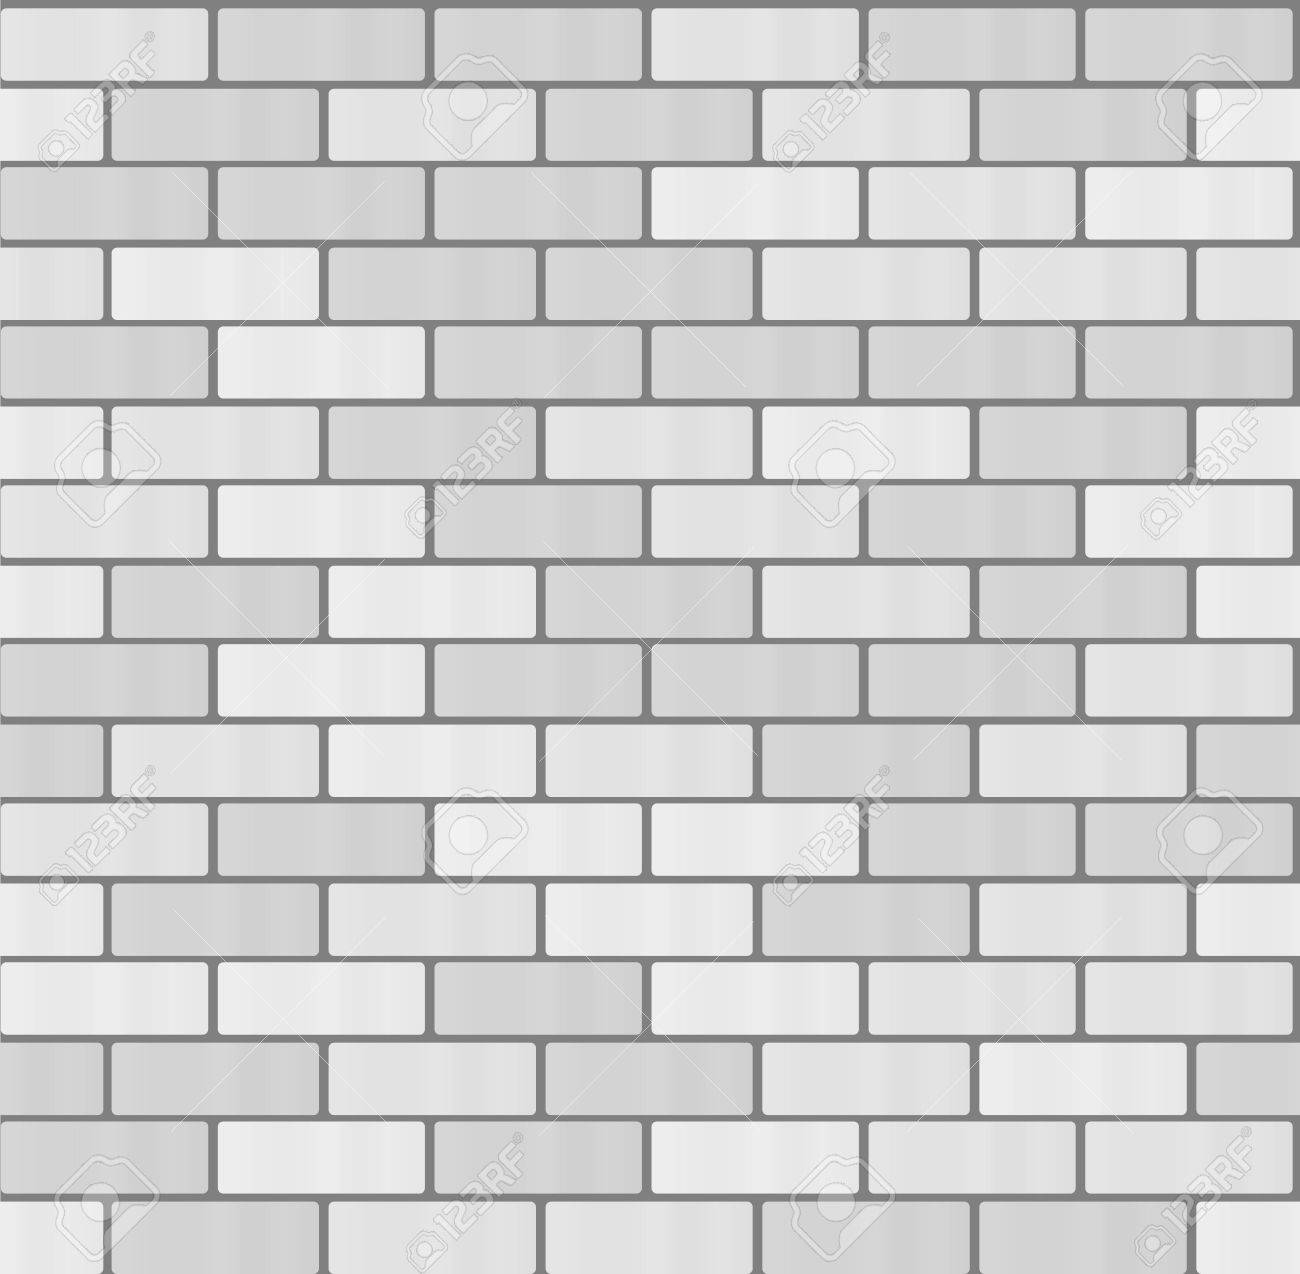 Gray White Brick Wall Seamless Pattern Background Flat Pictogram Concept Trendy Simple Vector Symbol